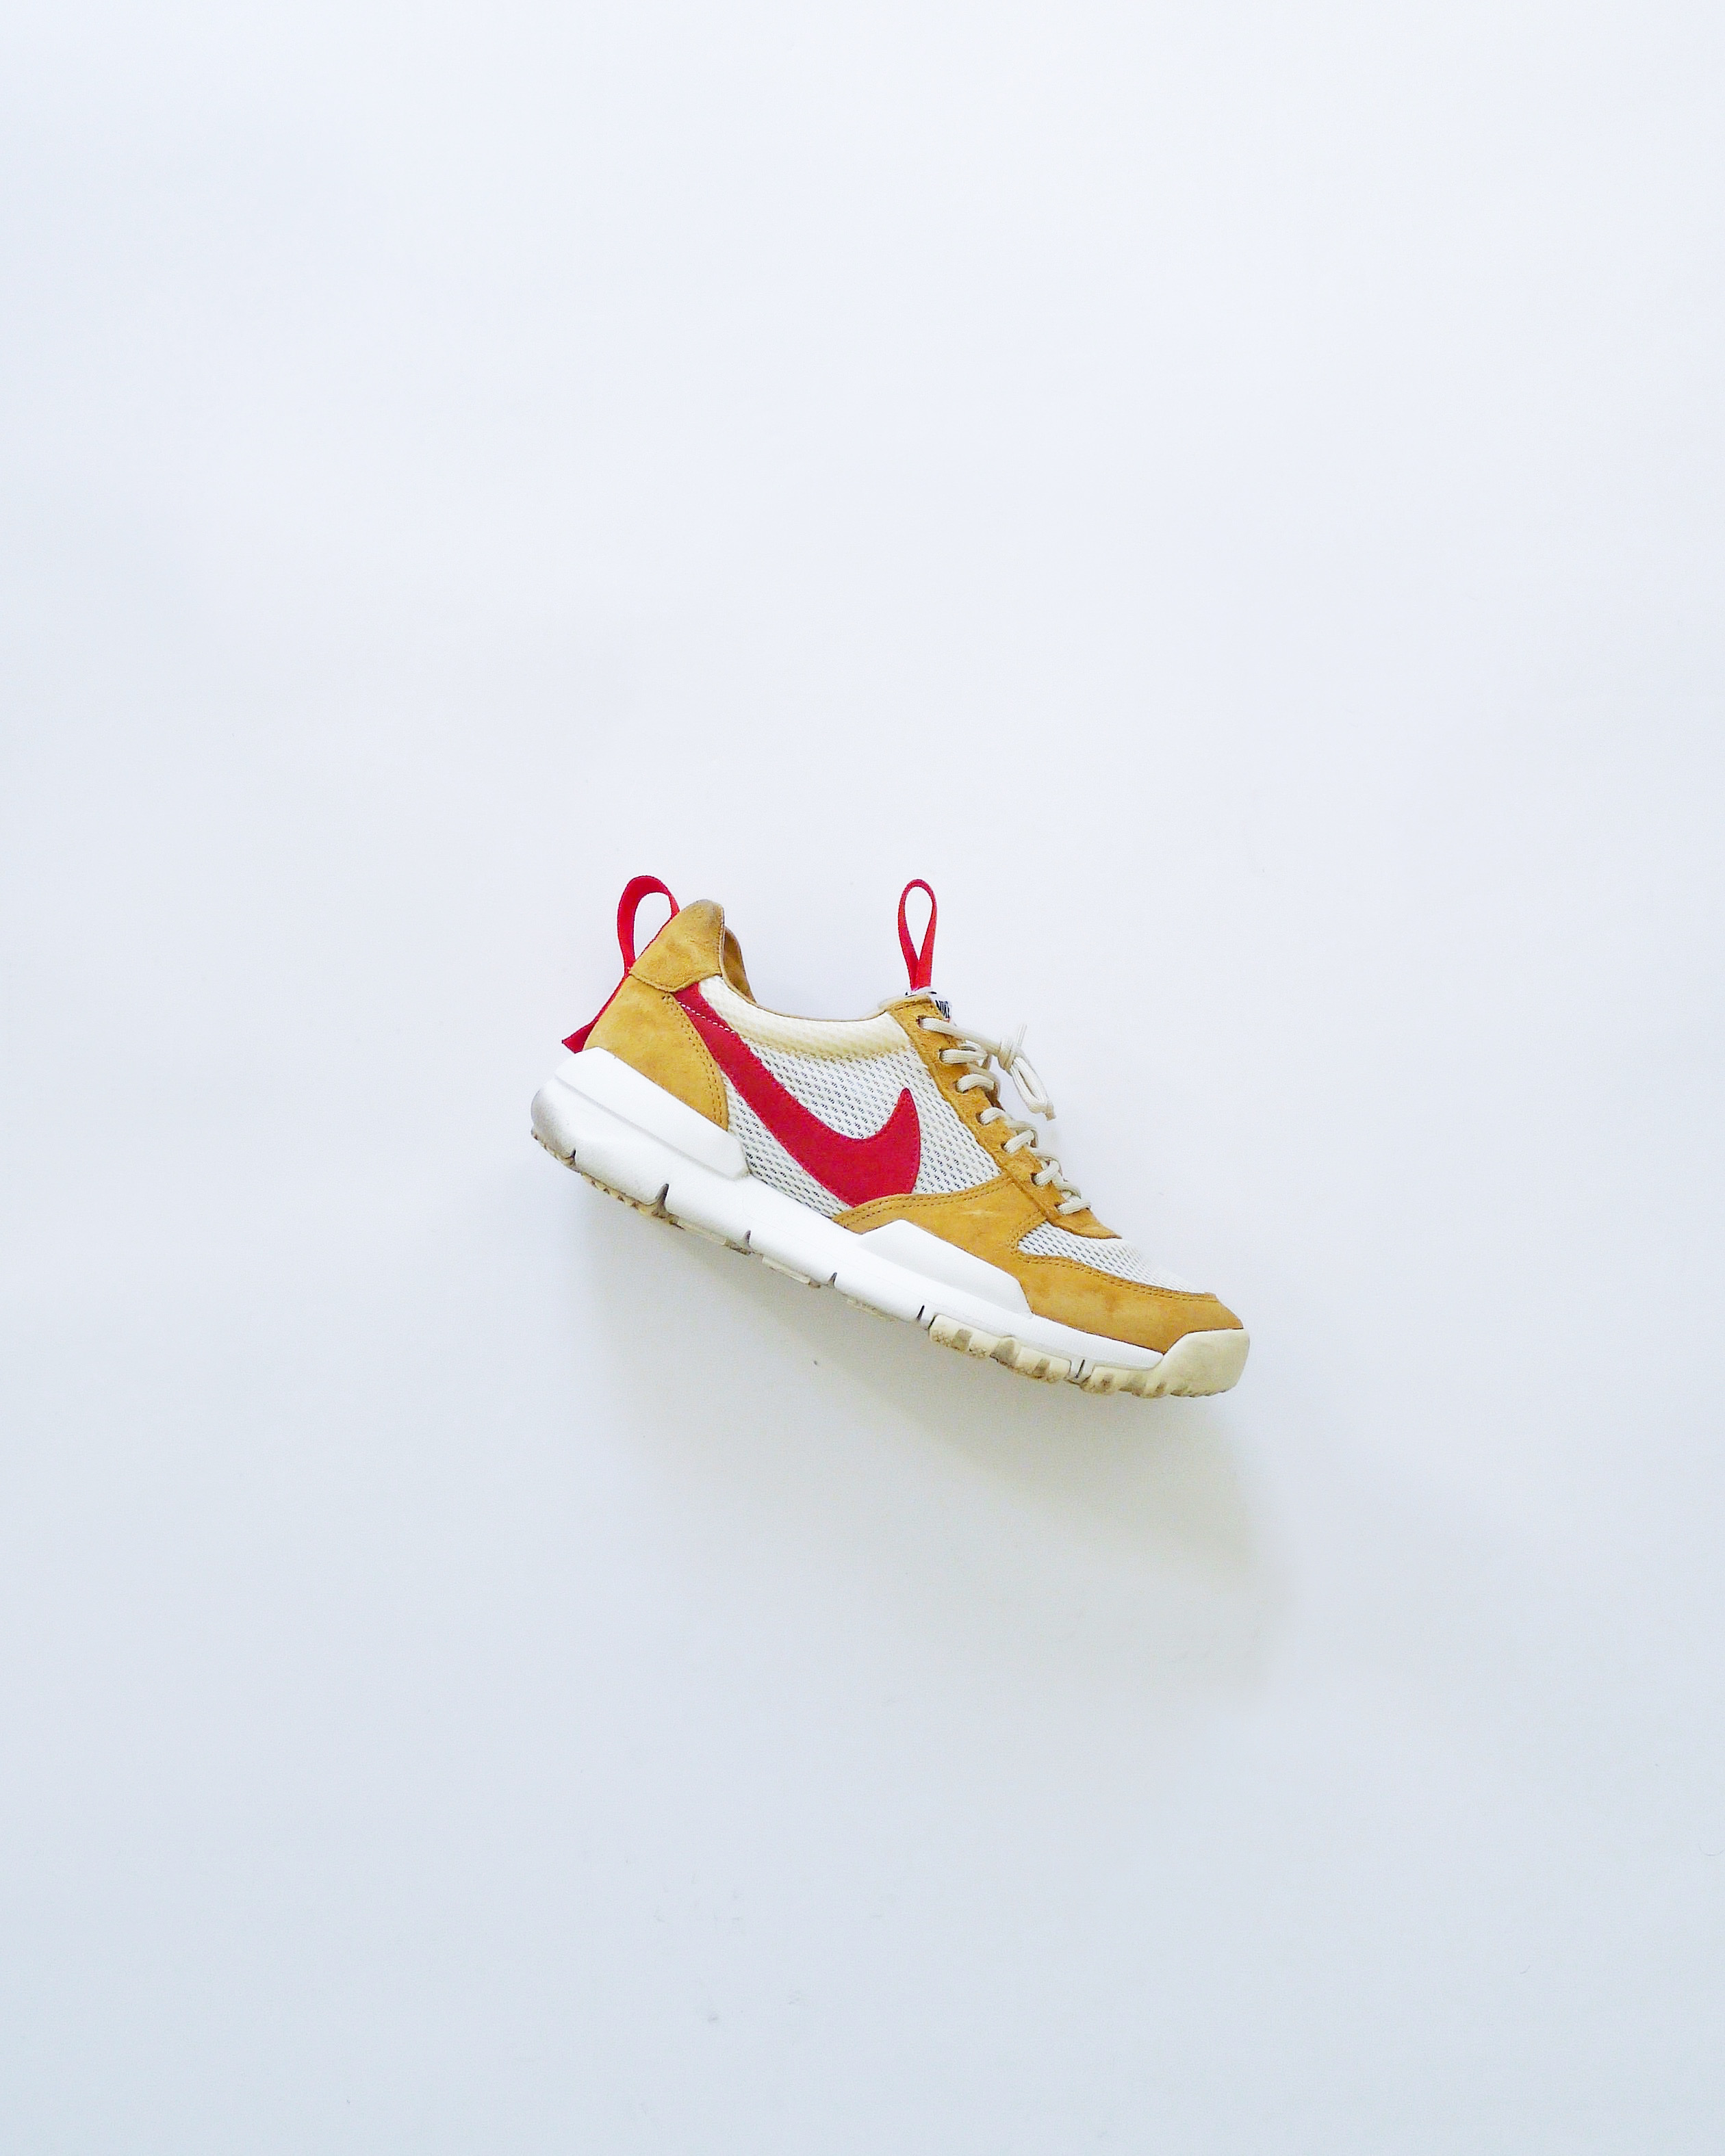 Tom Sachs x Nike Craft Mars Yard 2.0 - 2017